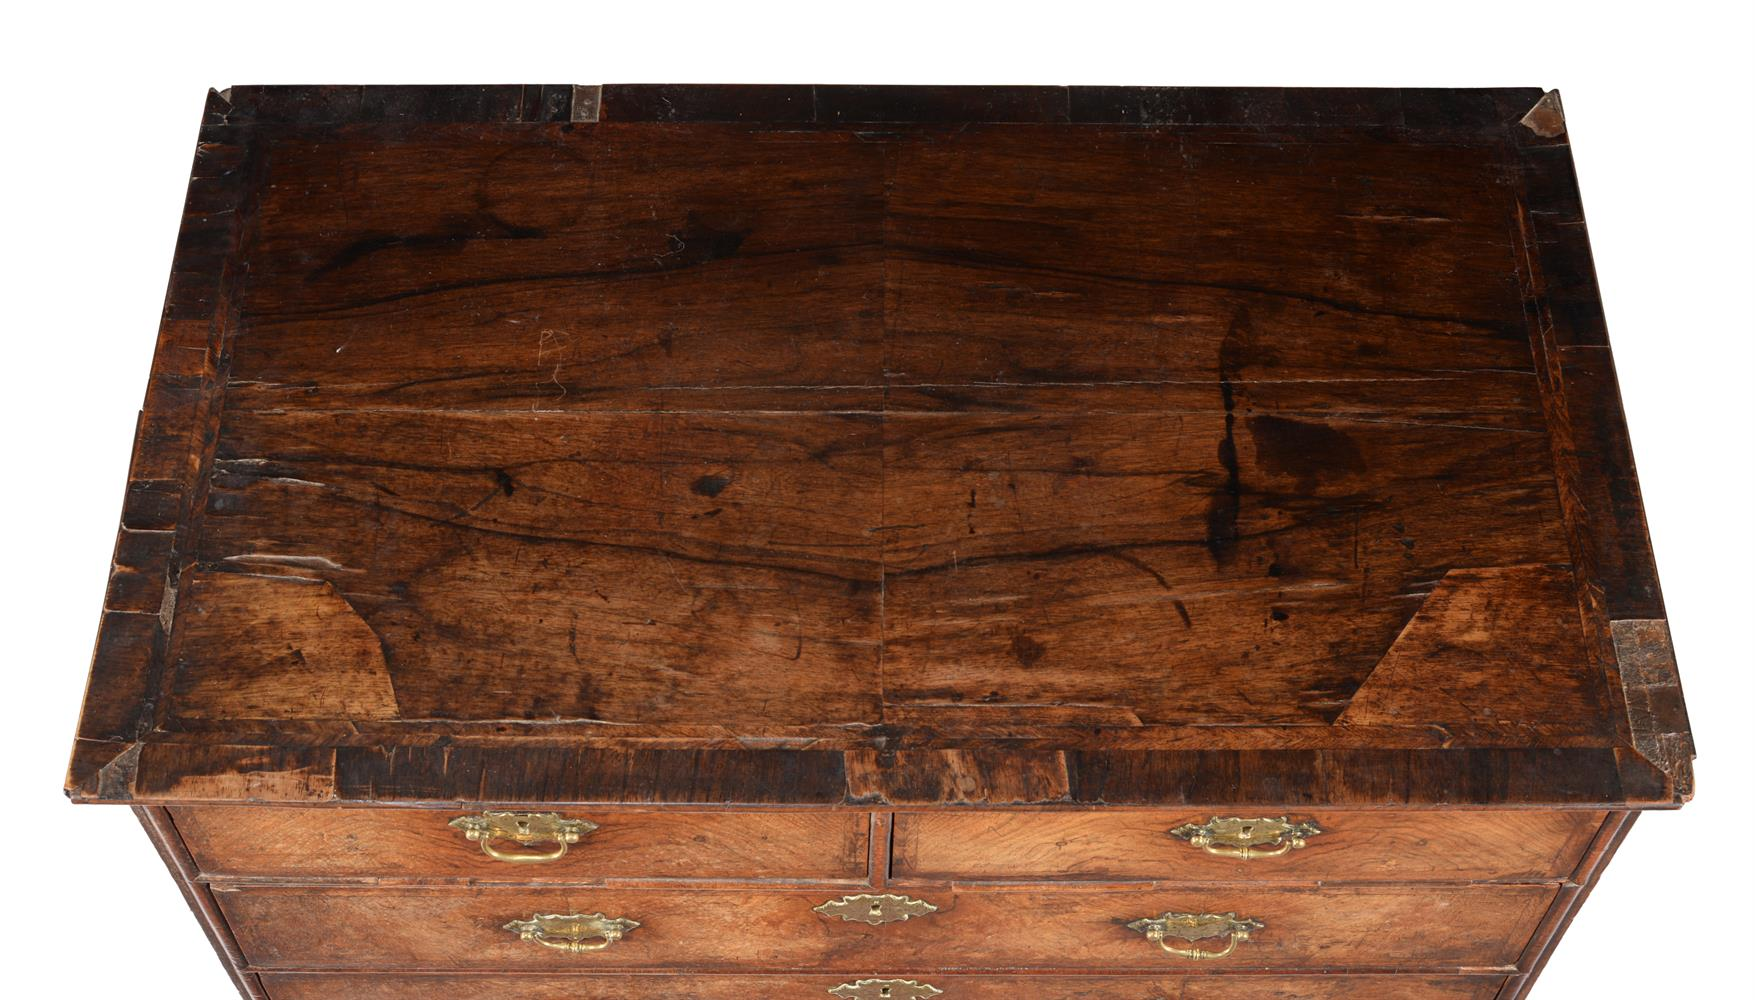 A GEORGE II WALNUT AND FEATHER BANDED CHEST OF DRAWERS, CIRCA 1740 - Image 3 of 3